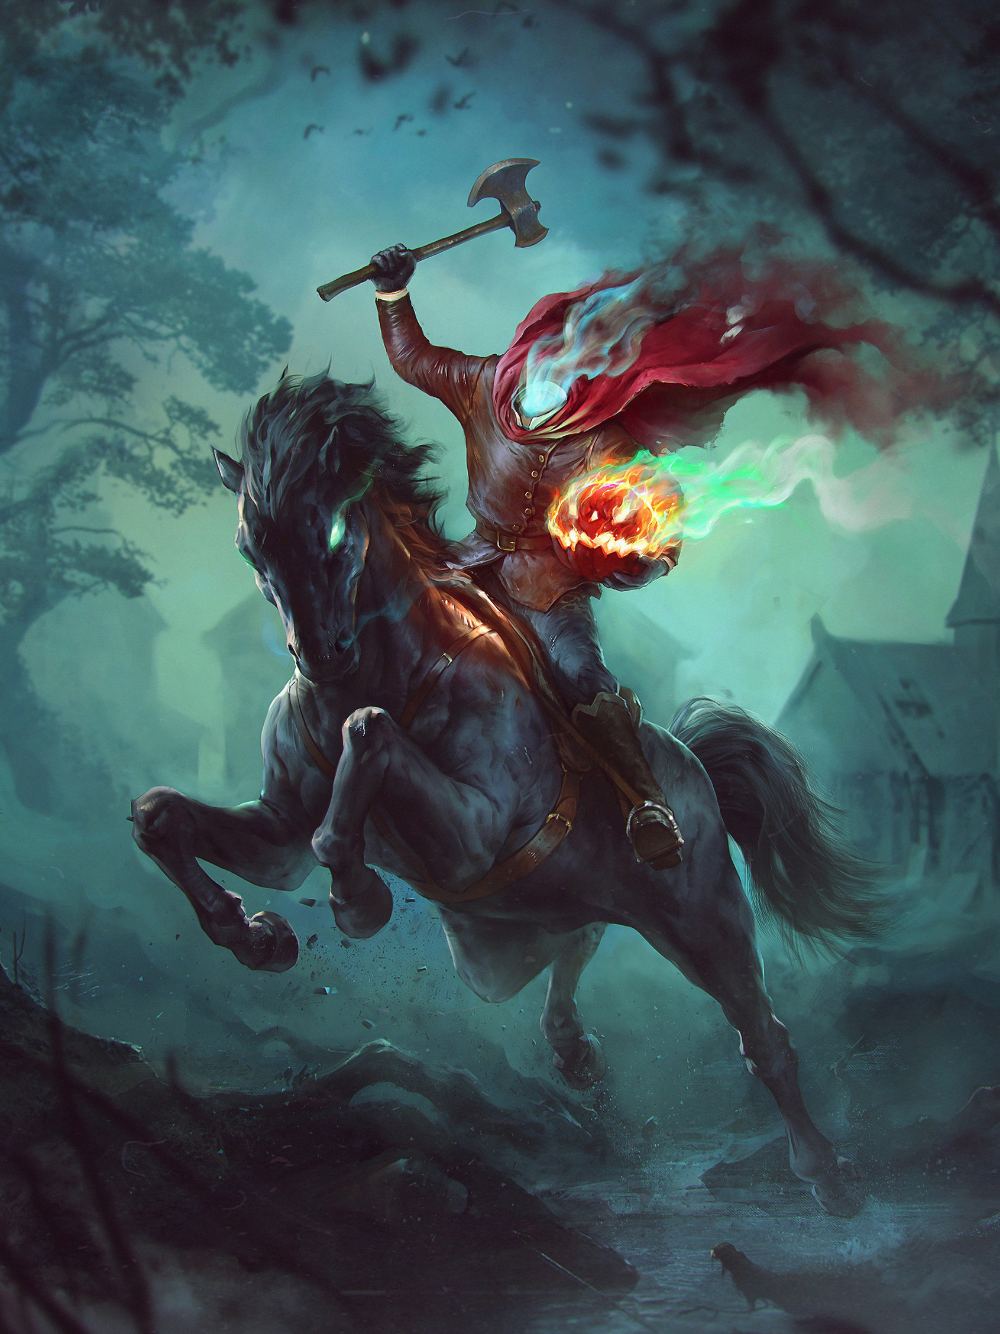 Halloween Scary Wallpaper Hd Backgrounds Headless Horseman Halloween Headless Horseman Halloween Painting